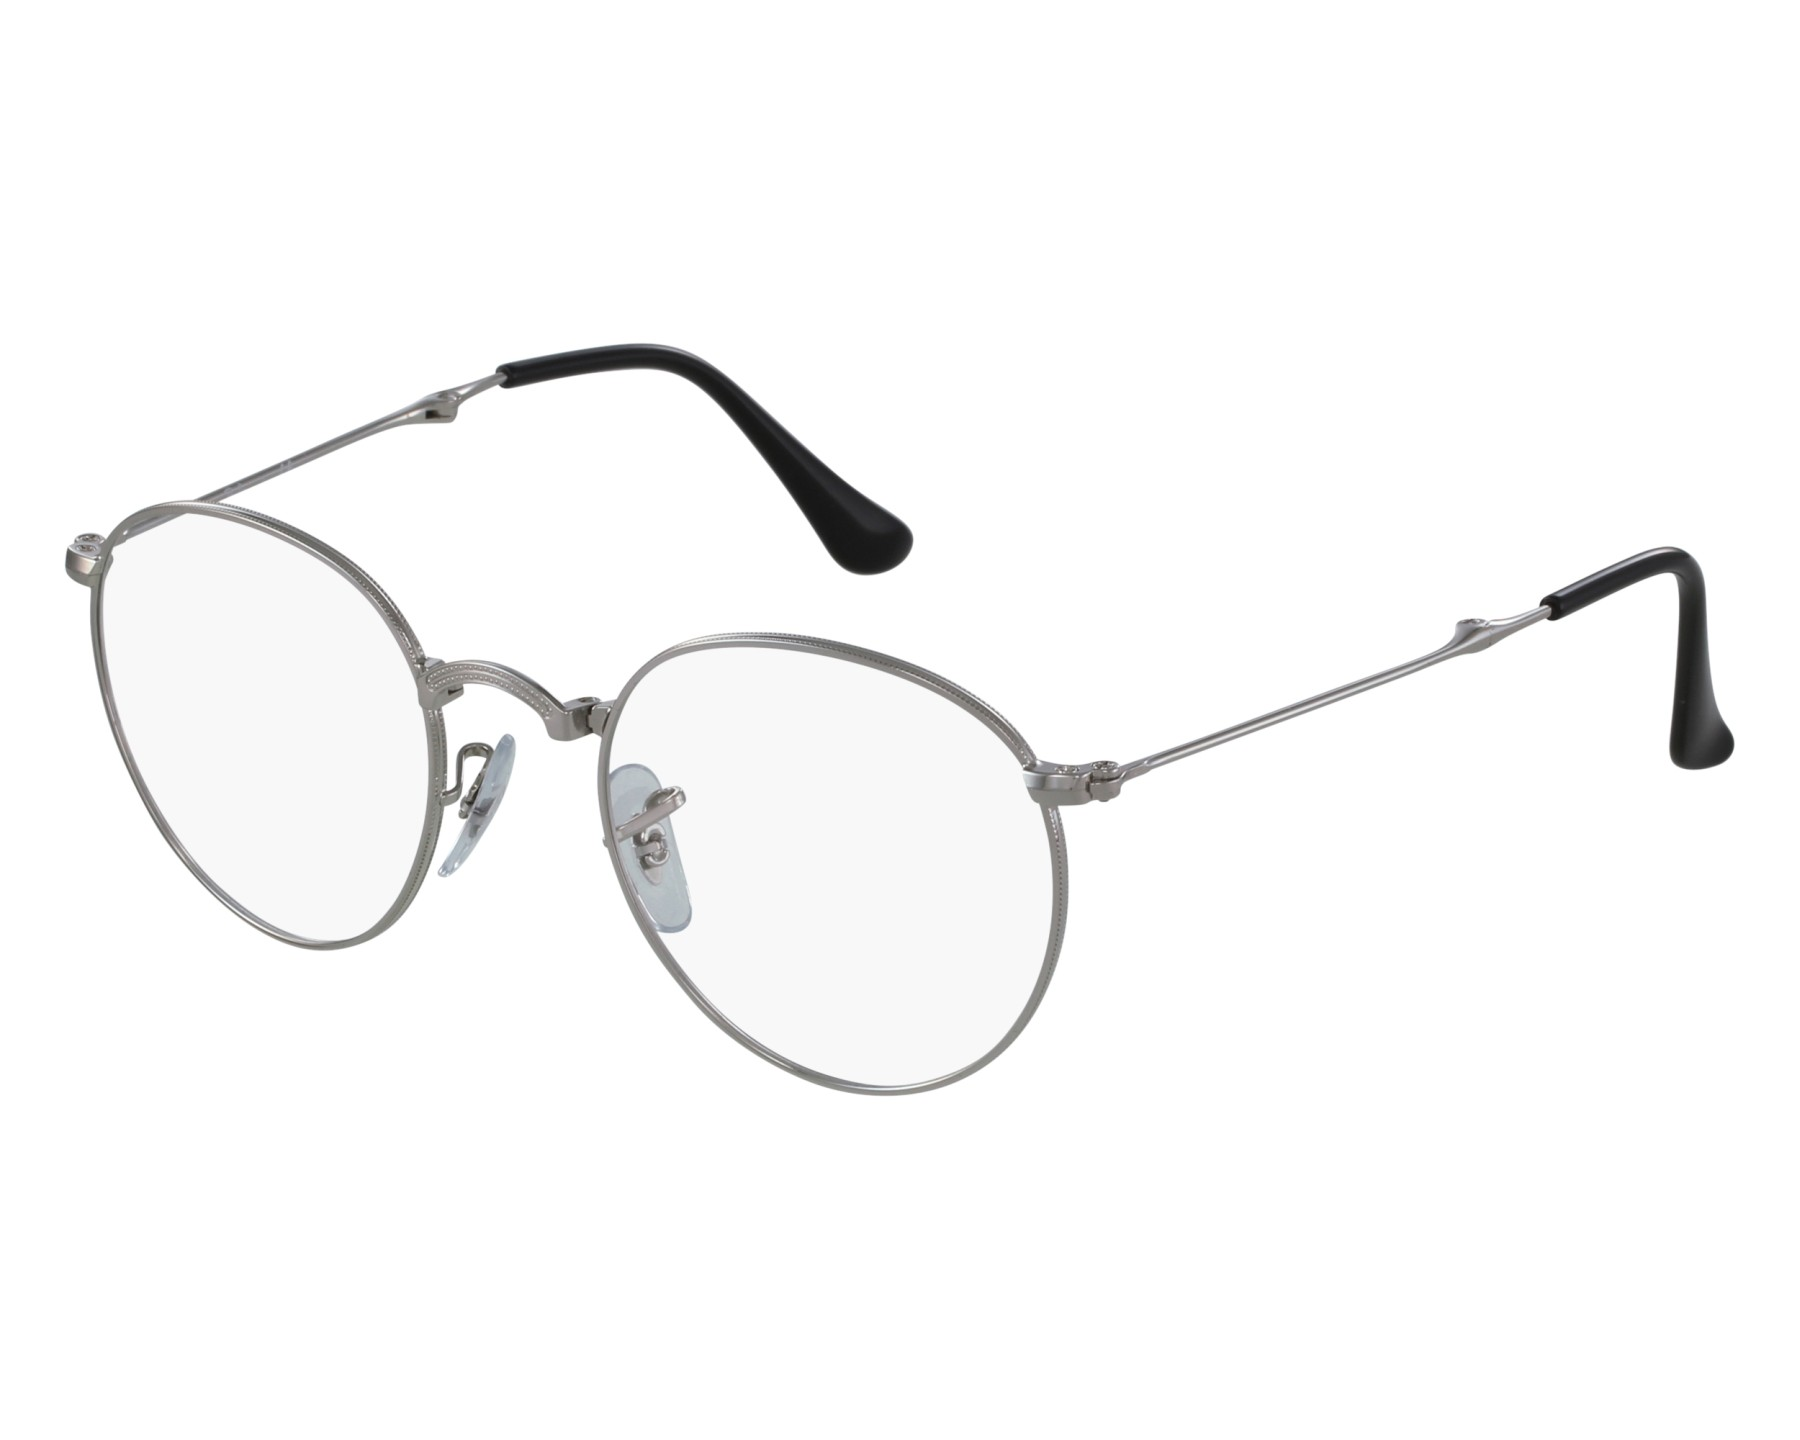 acd636de57f eyeglasses Ray-Ban RX-3532 2501 47-20 Silver front view